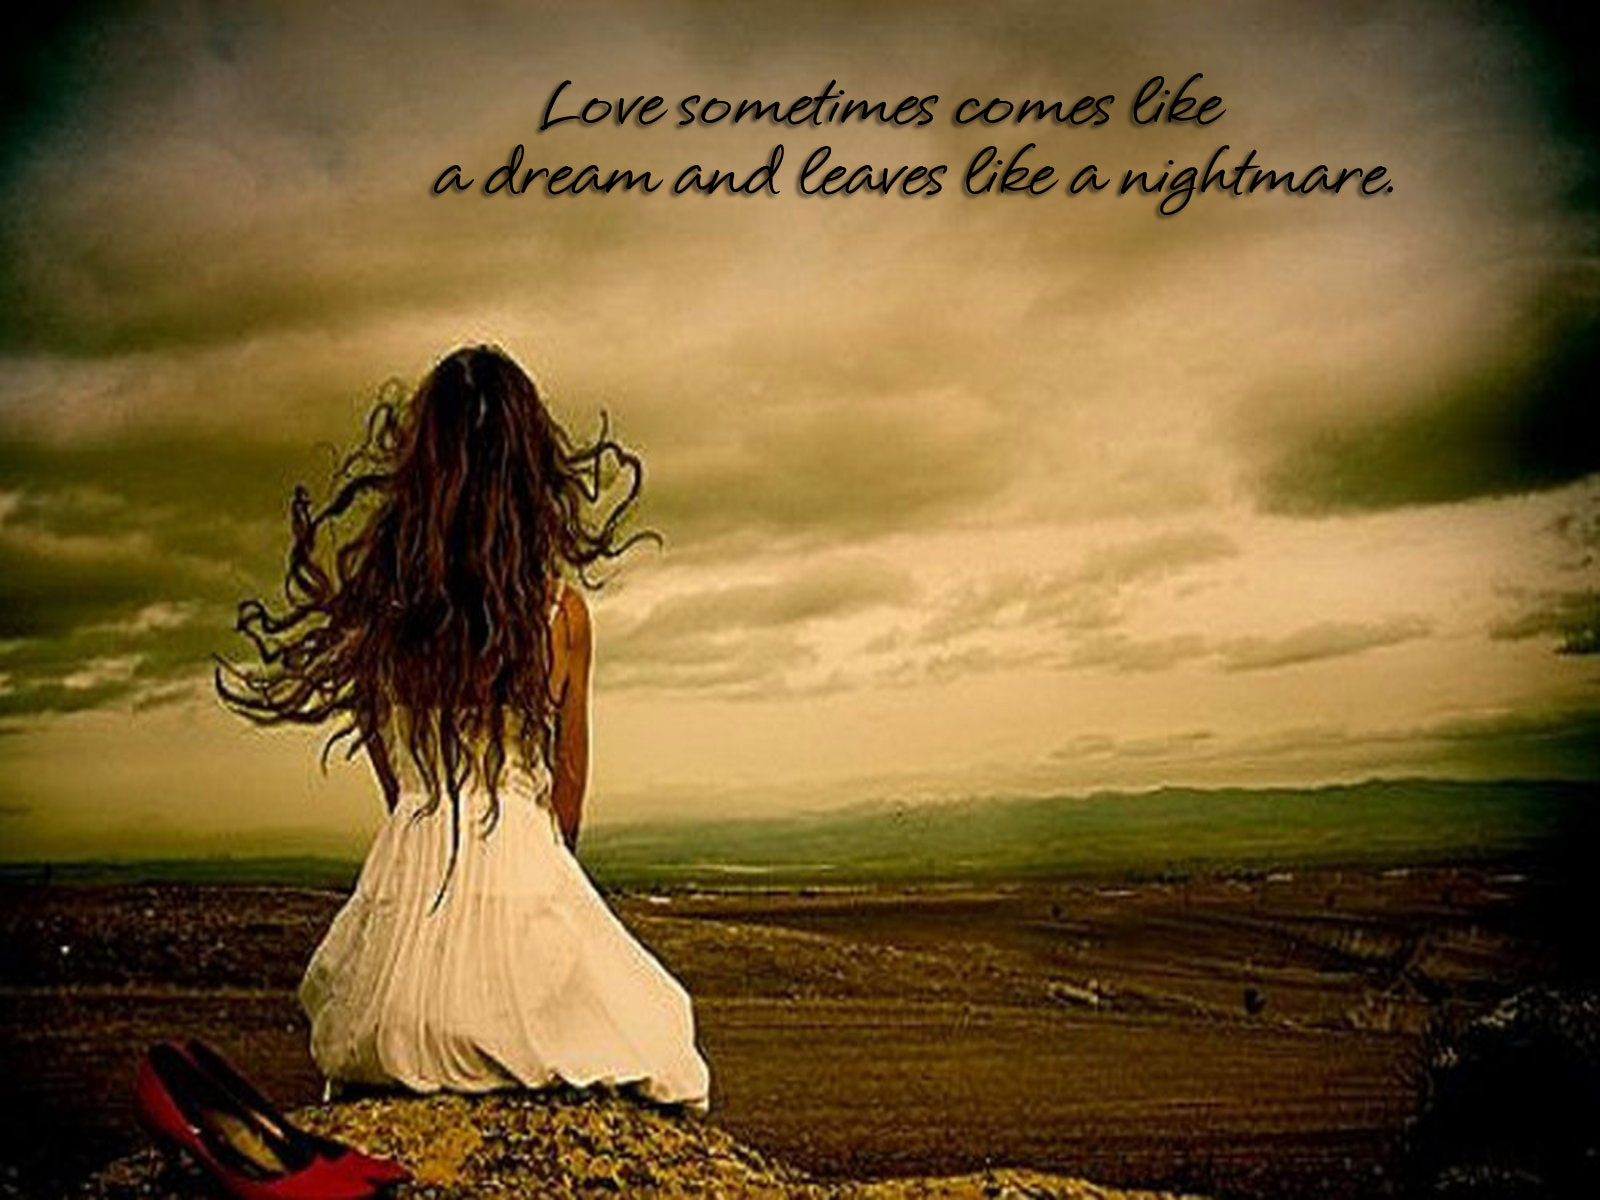 Sad Love Quotes hd Wallpaper in high resolution for Get Sad 1600x1200